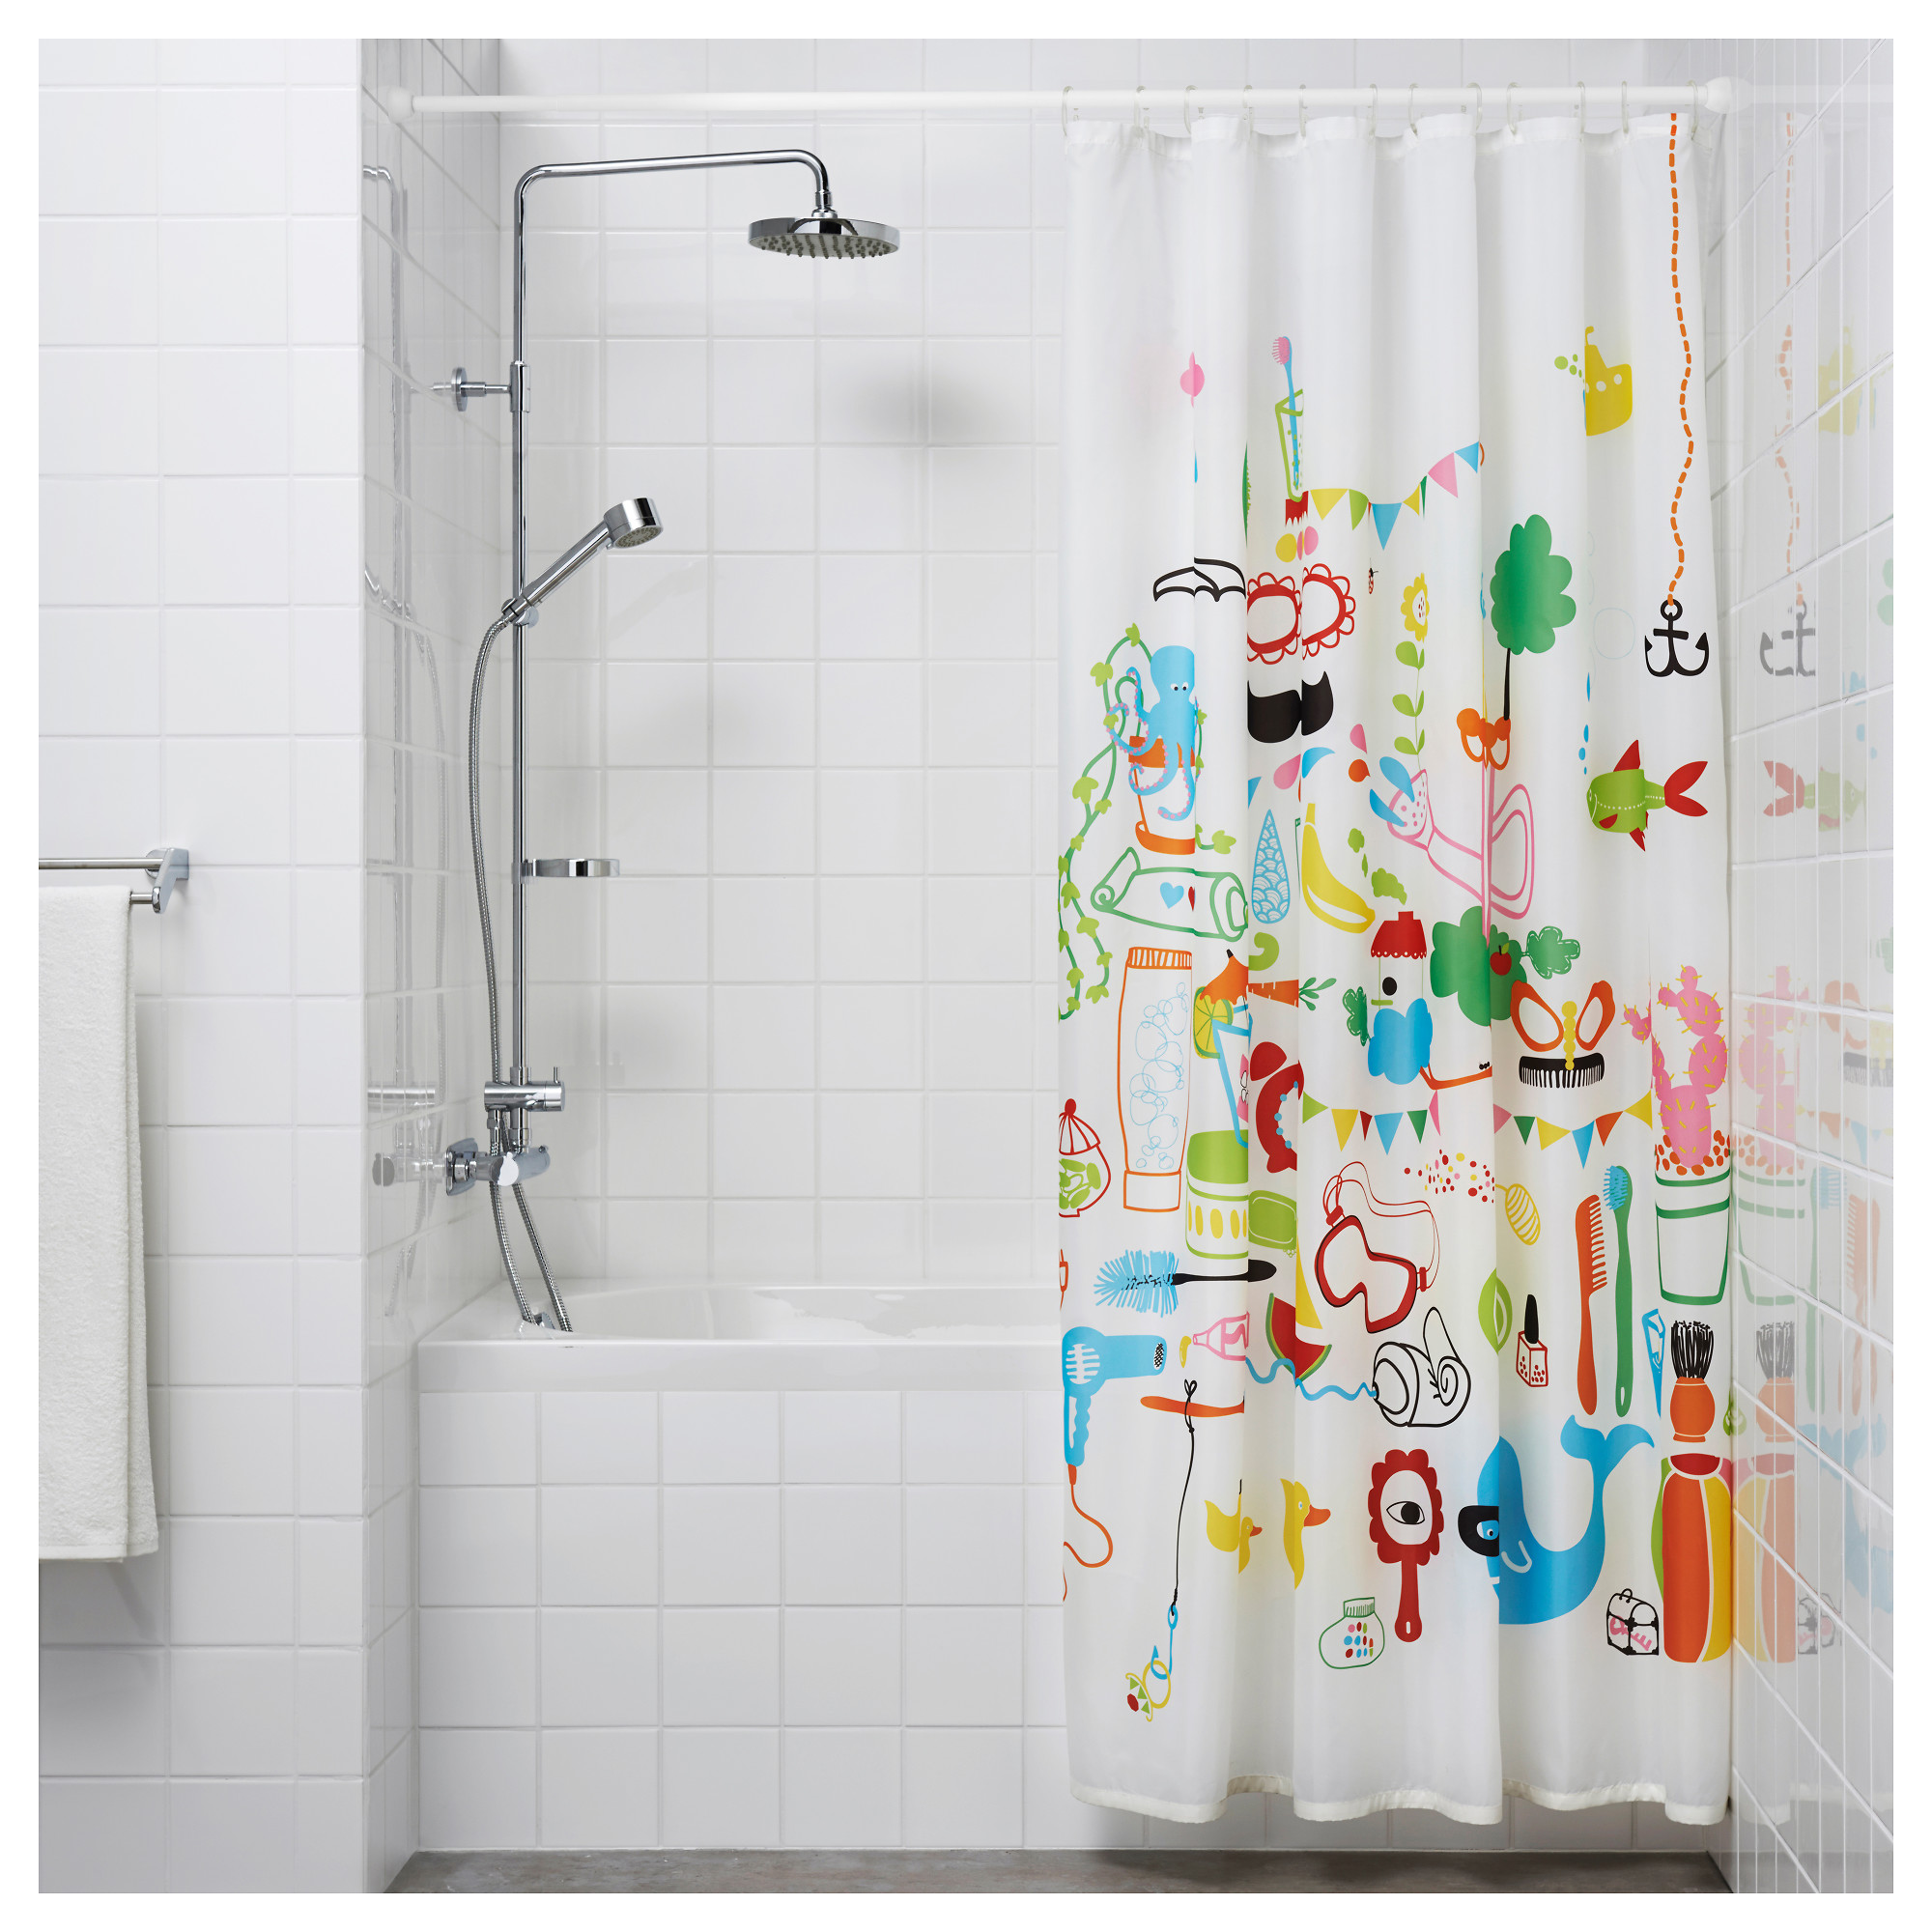 Ikea Shower Curtain for Best Your Bathroom Decoration: Ikea Shower Curtain | Neon Shower Curtain | Cheap Shower Curtains